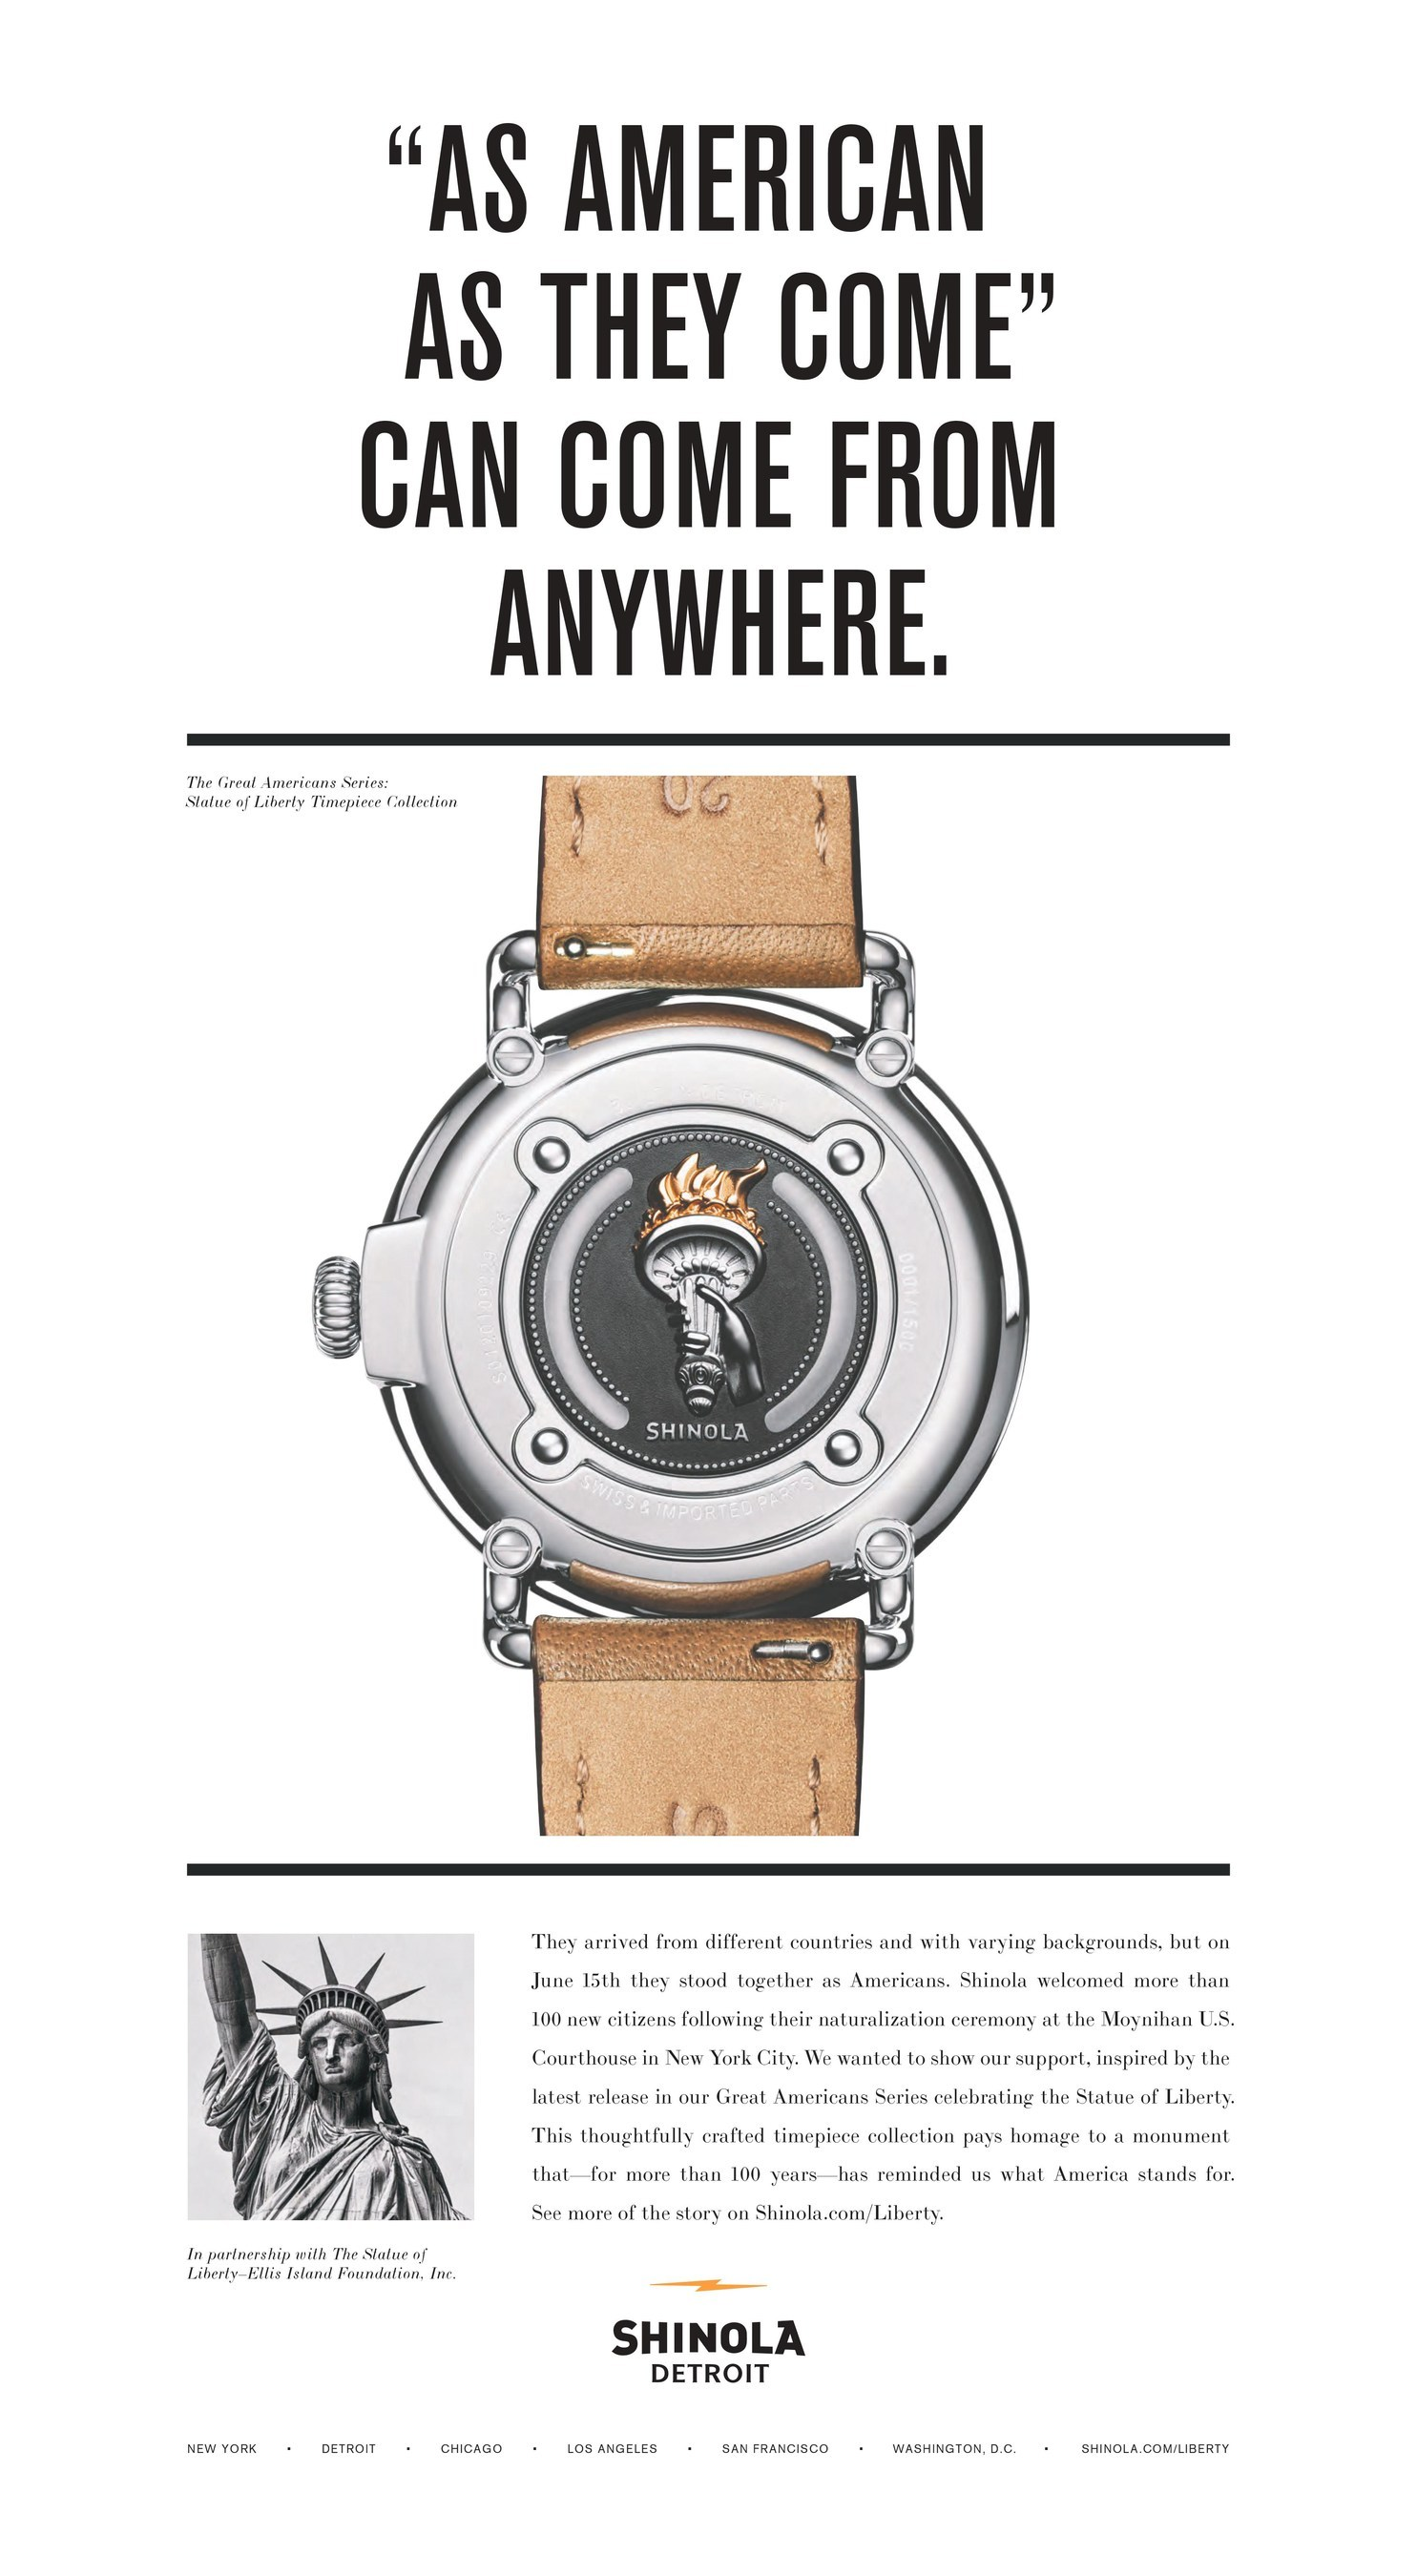 Shinola in Detroit Introduces Limited-edition Statue of